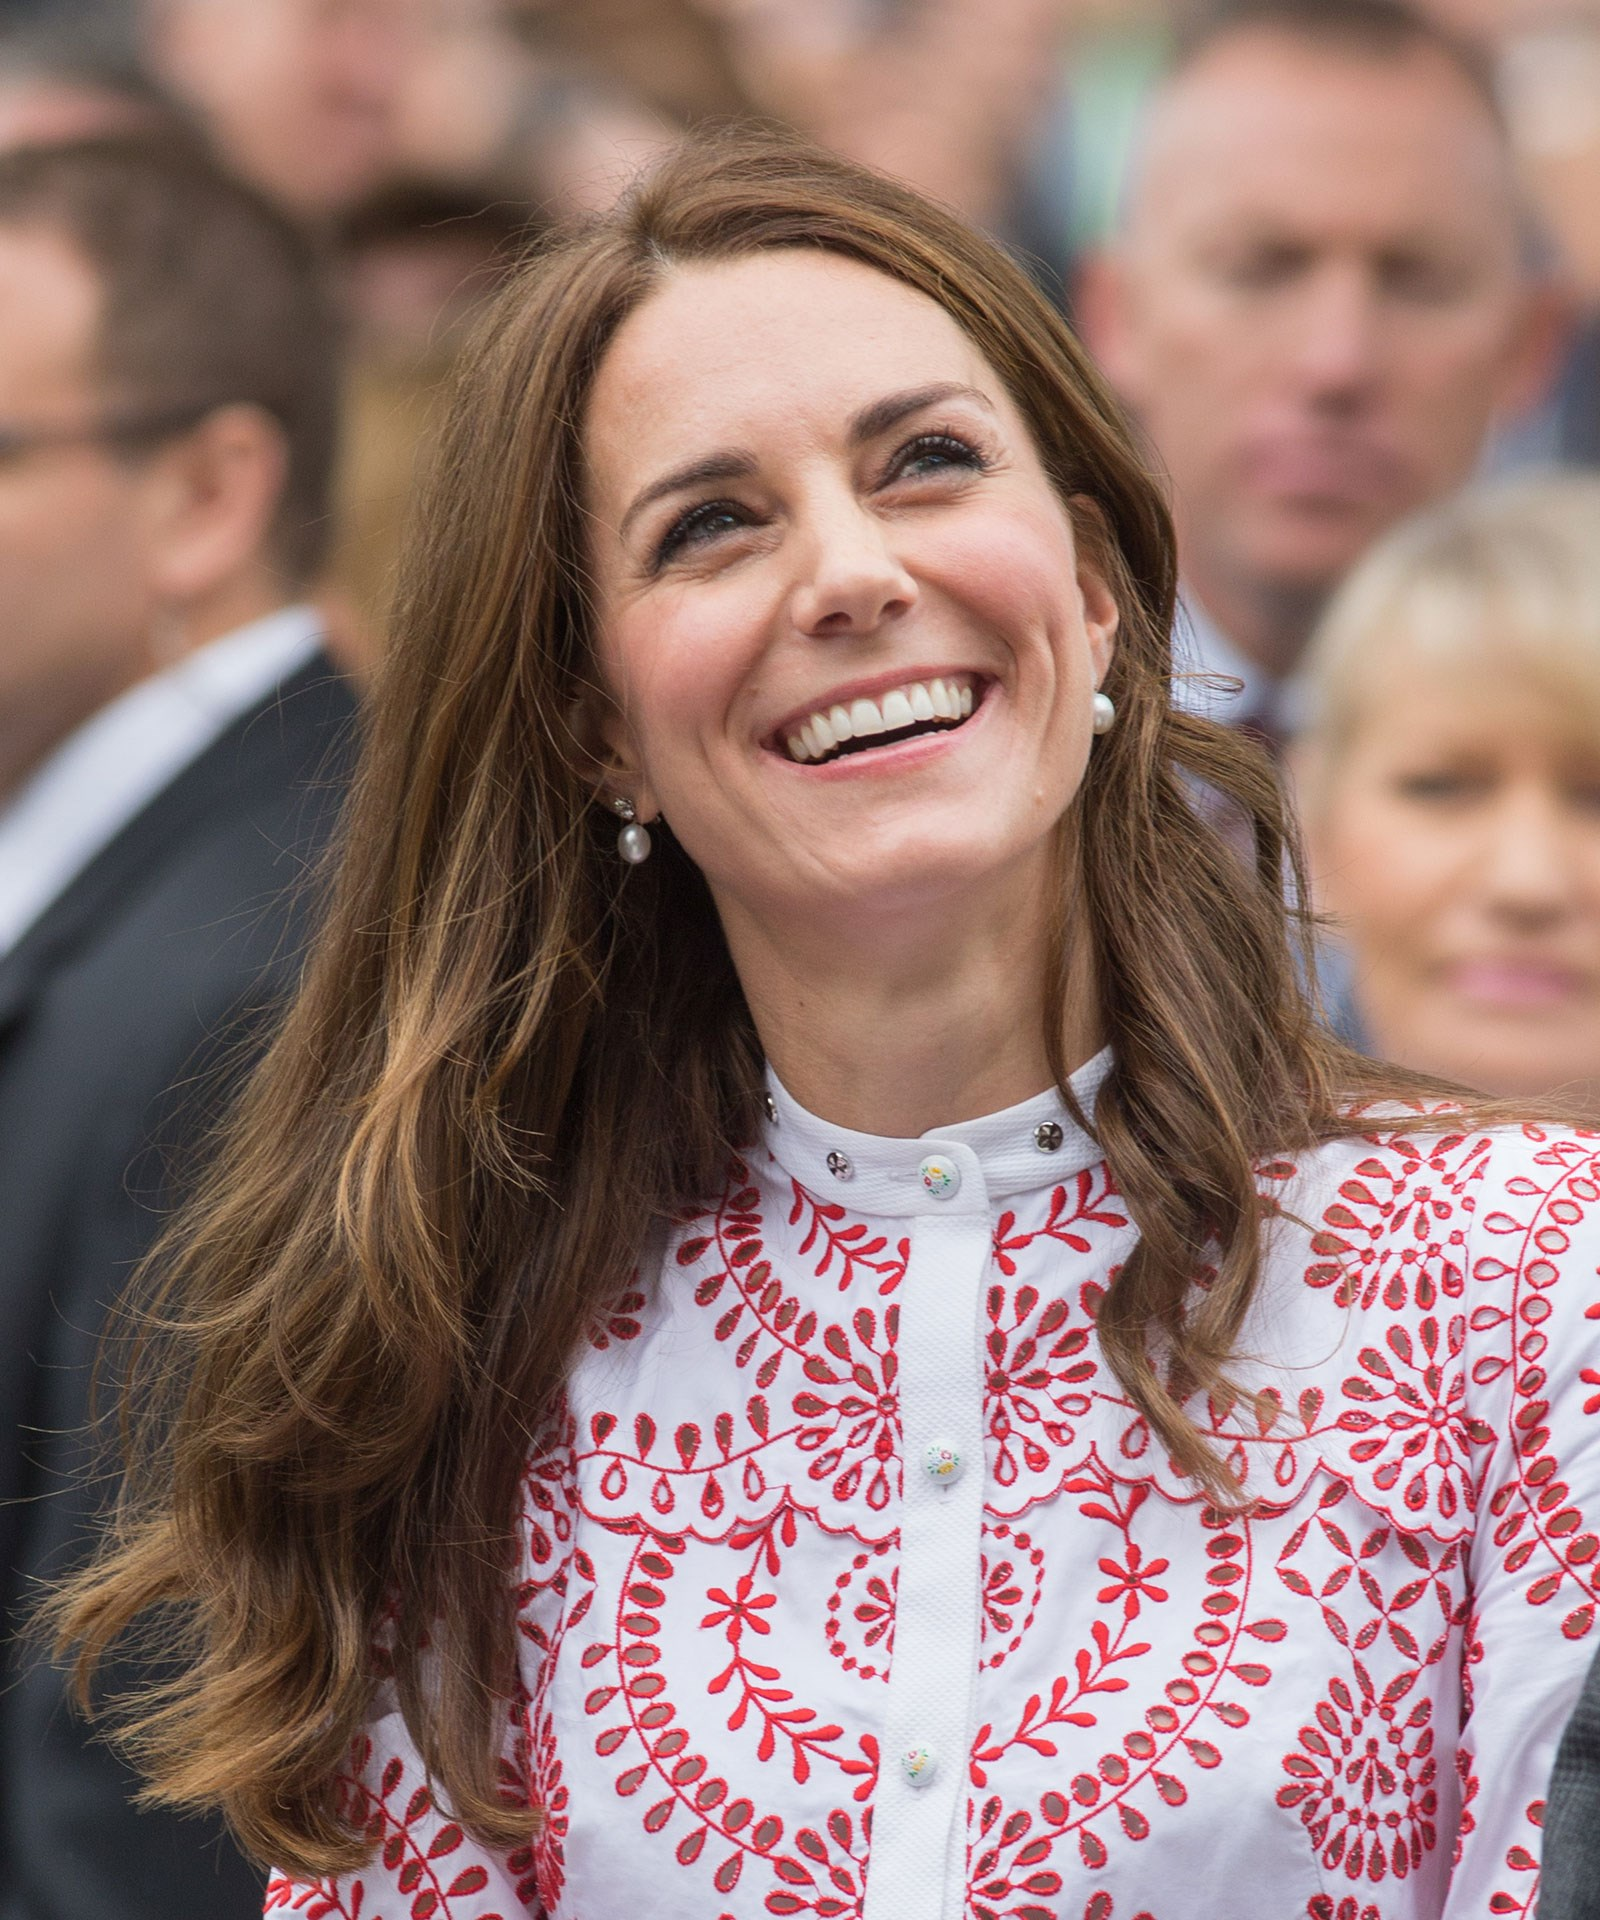 Kate's stunning Alexander McQueen dress was custom made for her, and adapted from a piece in McQueen's forthcoming Resort 17 collection. The stunning broderie detailing and unusual red and white colour palette makes this one of the Duchess' most talked-about outfits in recent months.